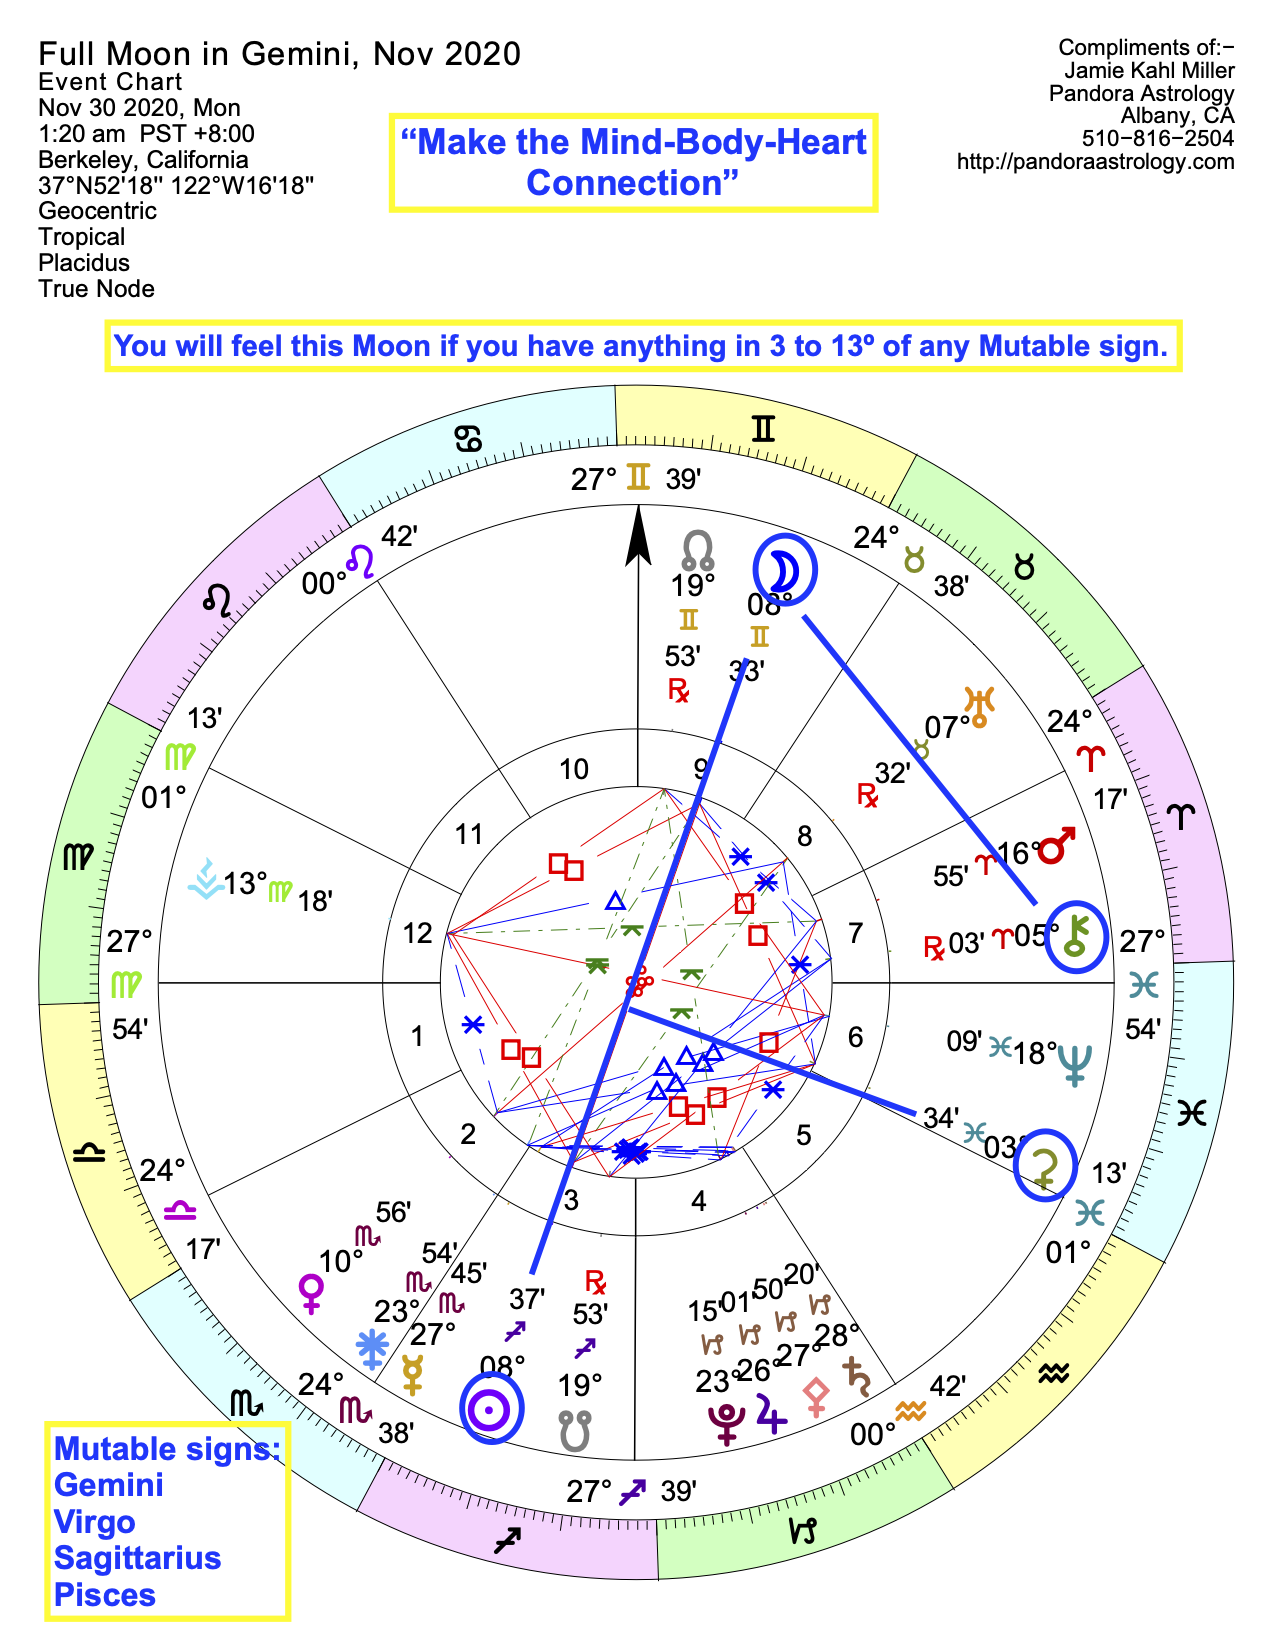 Astrology Chart of Gemini Full Moon and Lunar Eclipse in November 2020